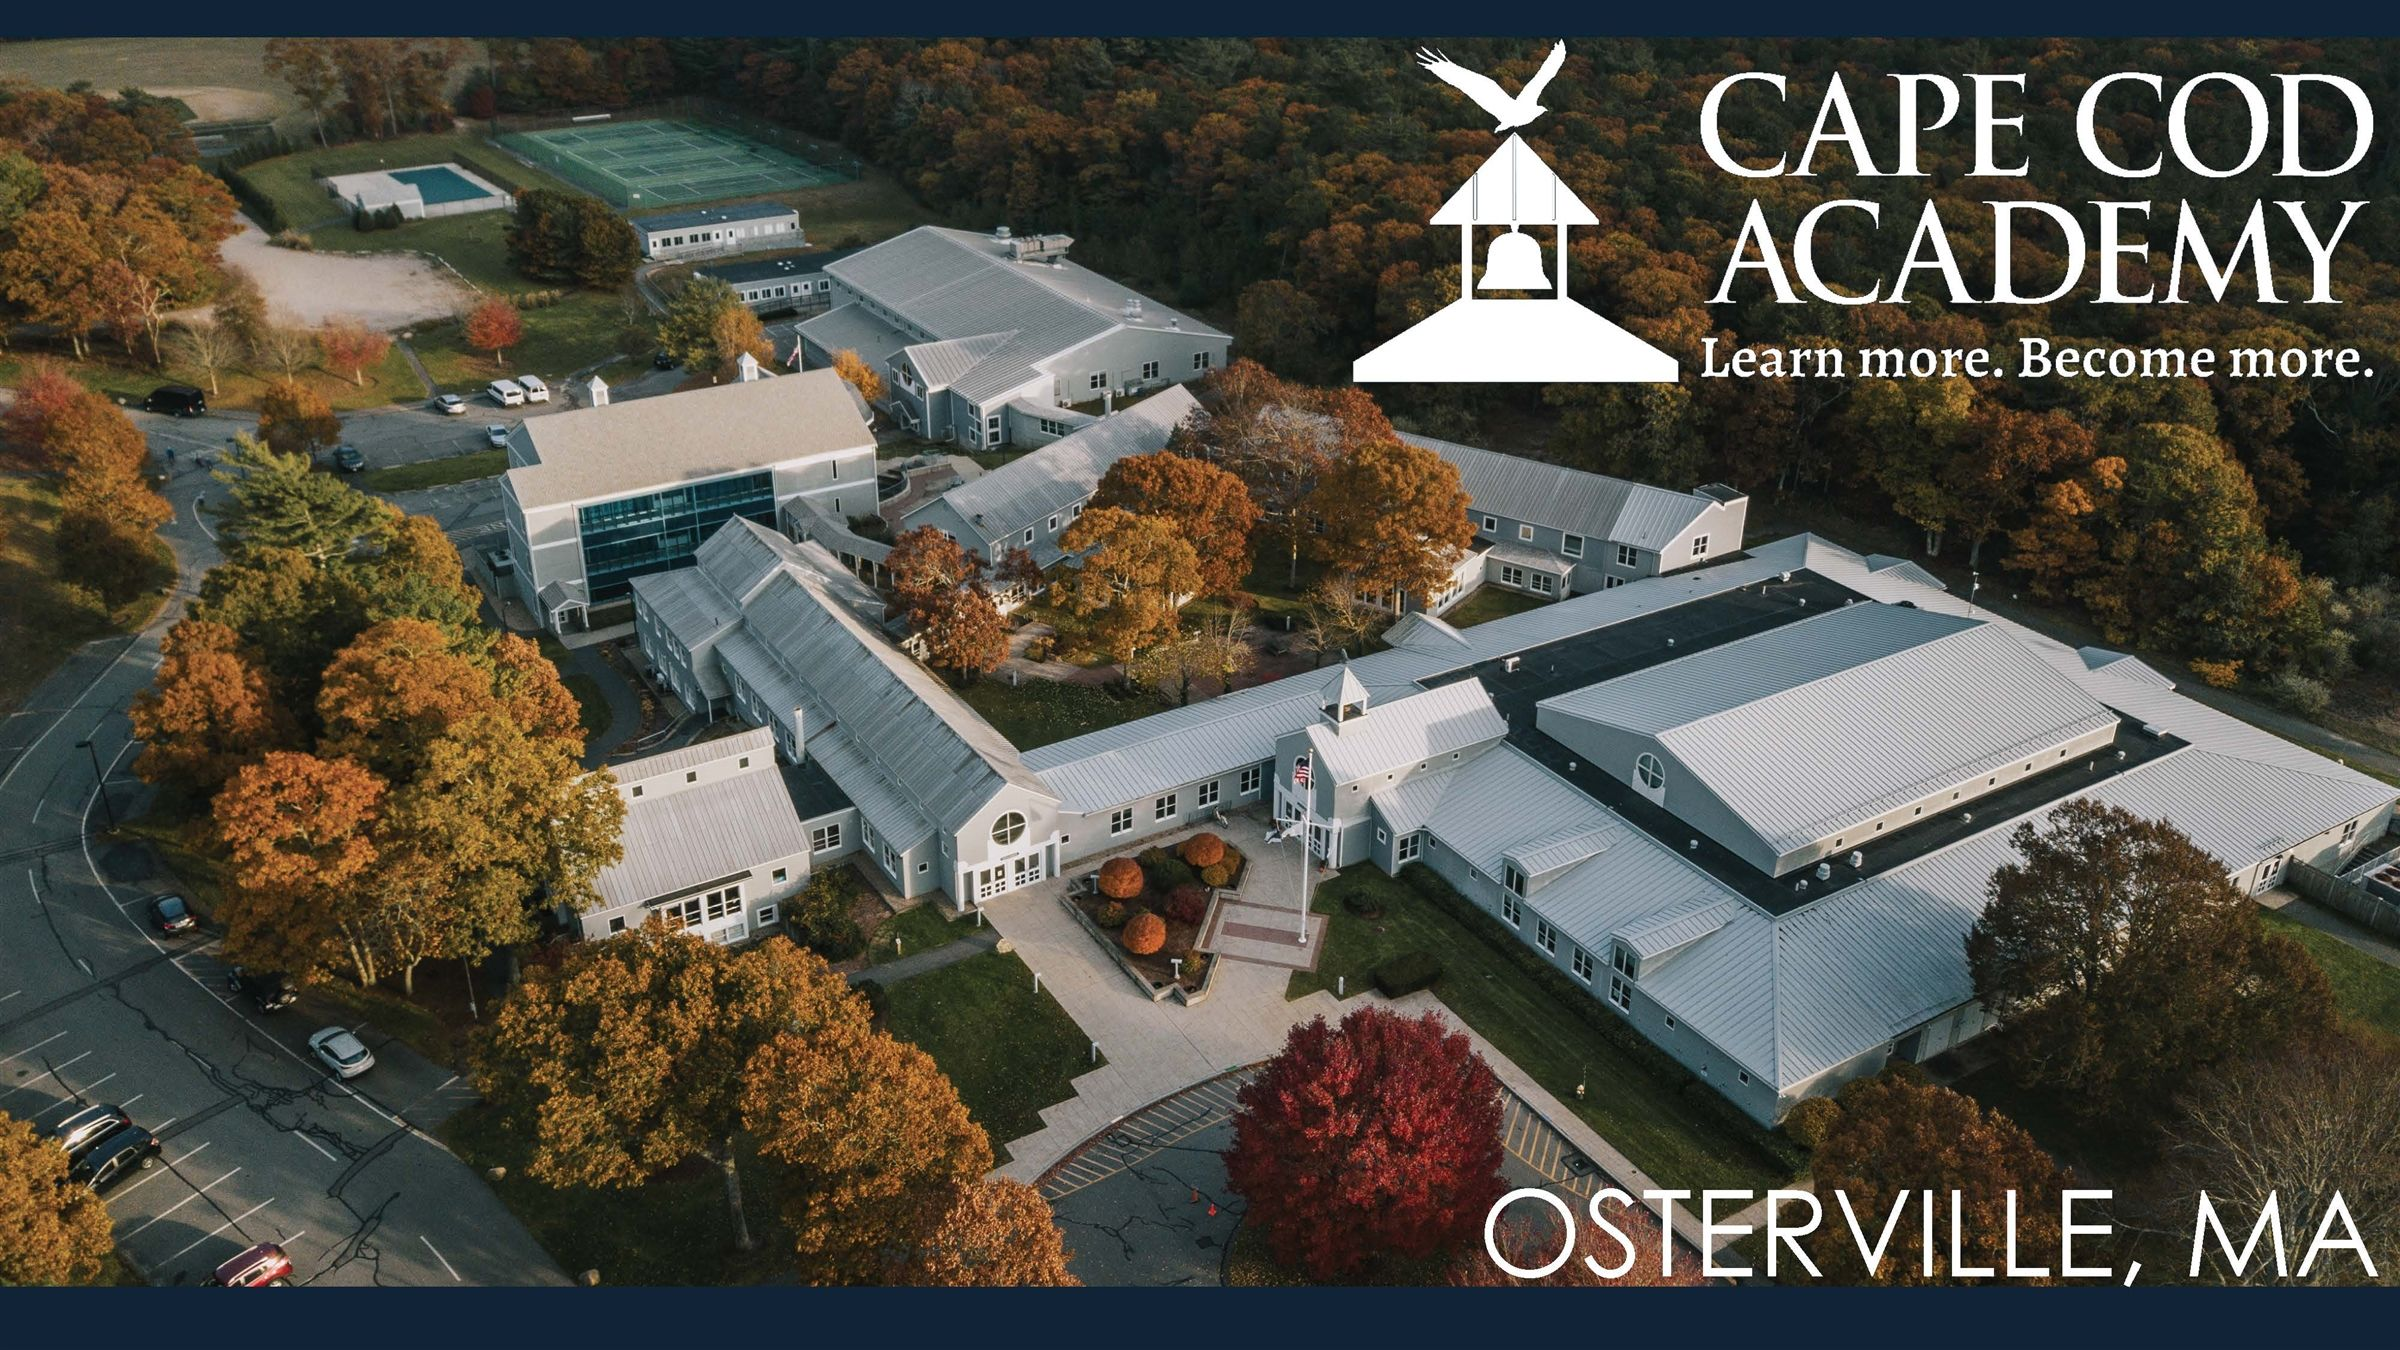 Welcome to Cape Cod Academy!